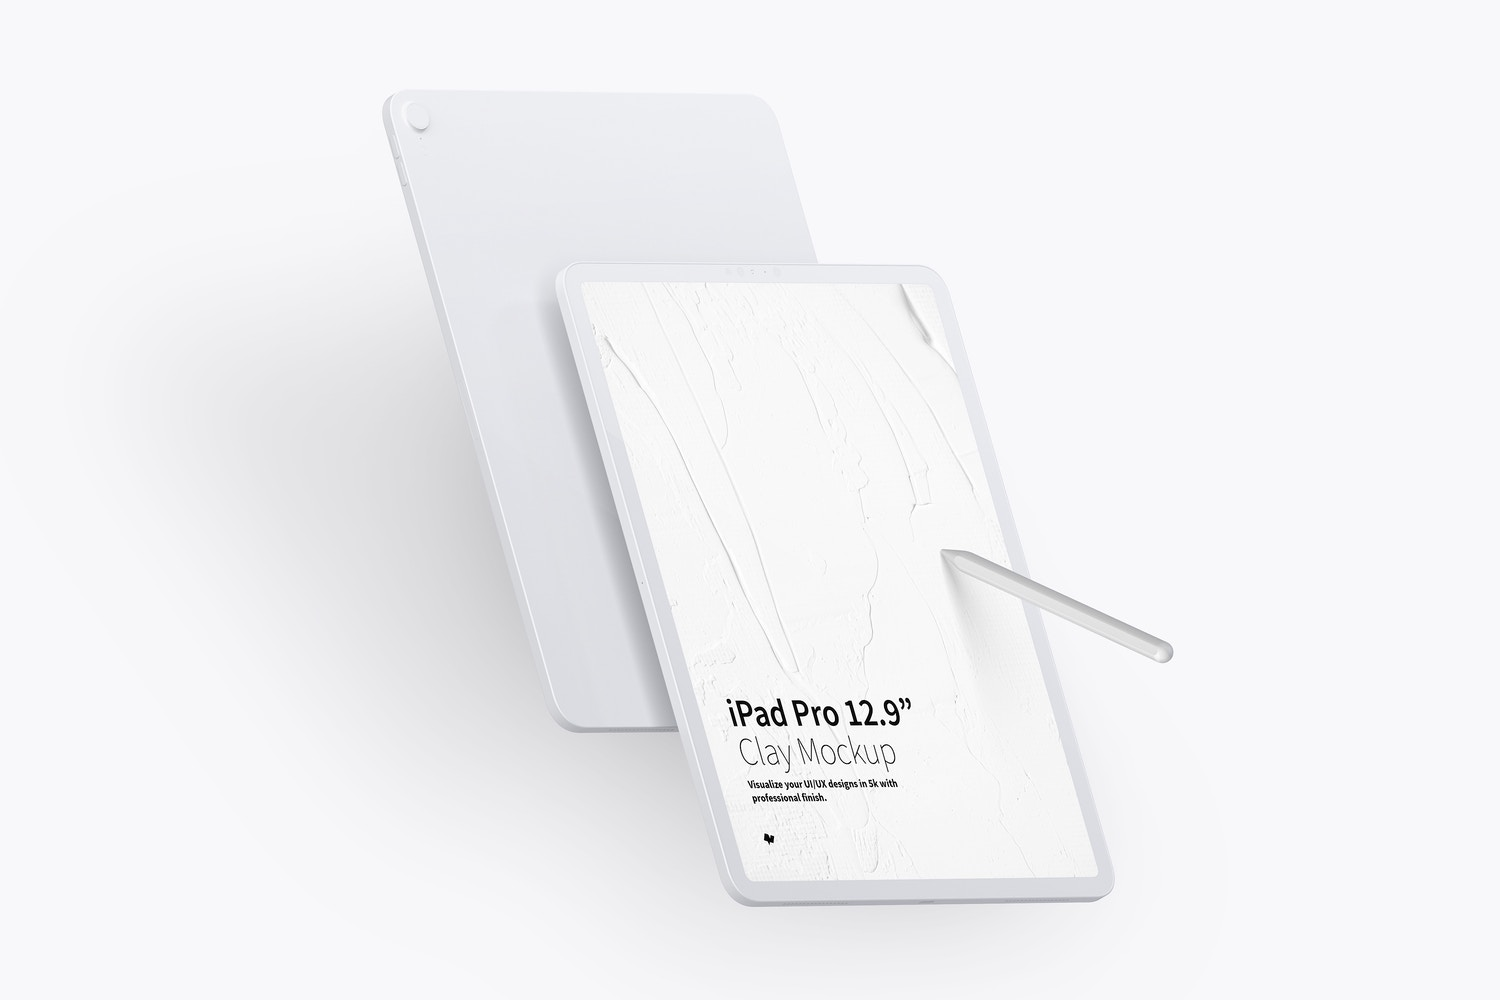 "Clay iPad Pro 12.9"" Mockup, Portrait Front and Back View by Original Mockups on Original Mockups"